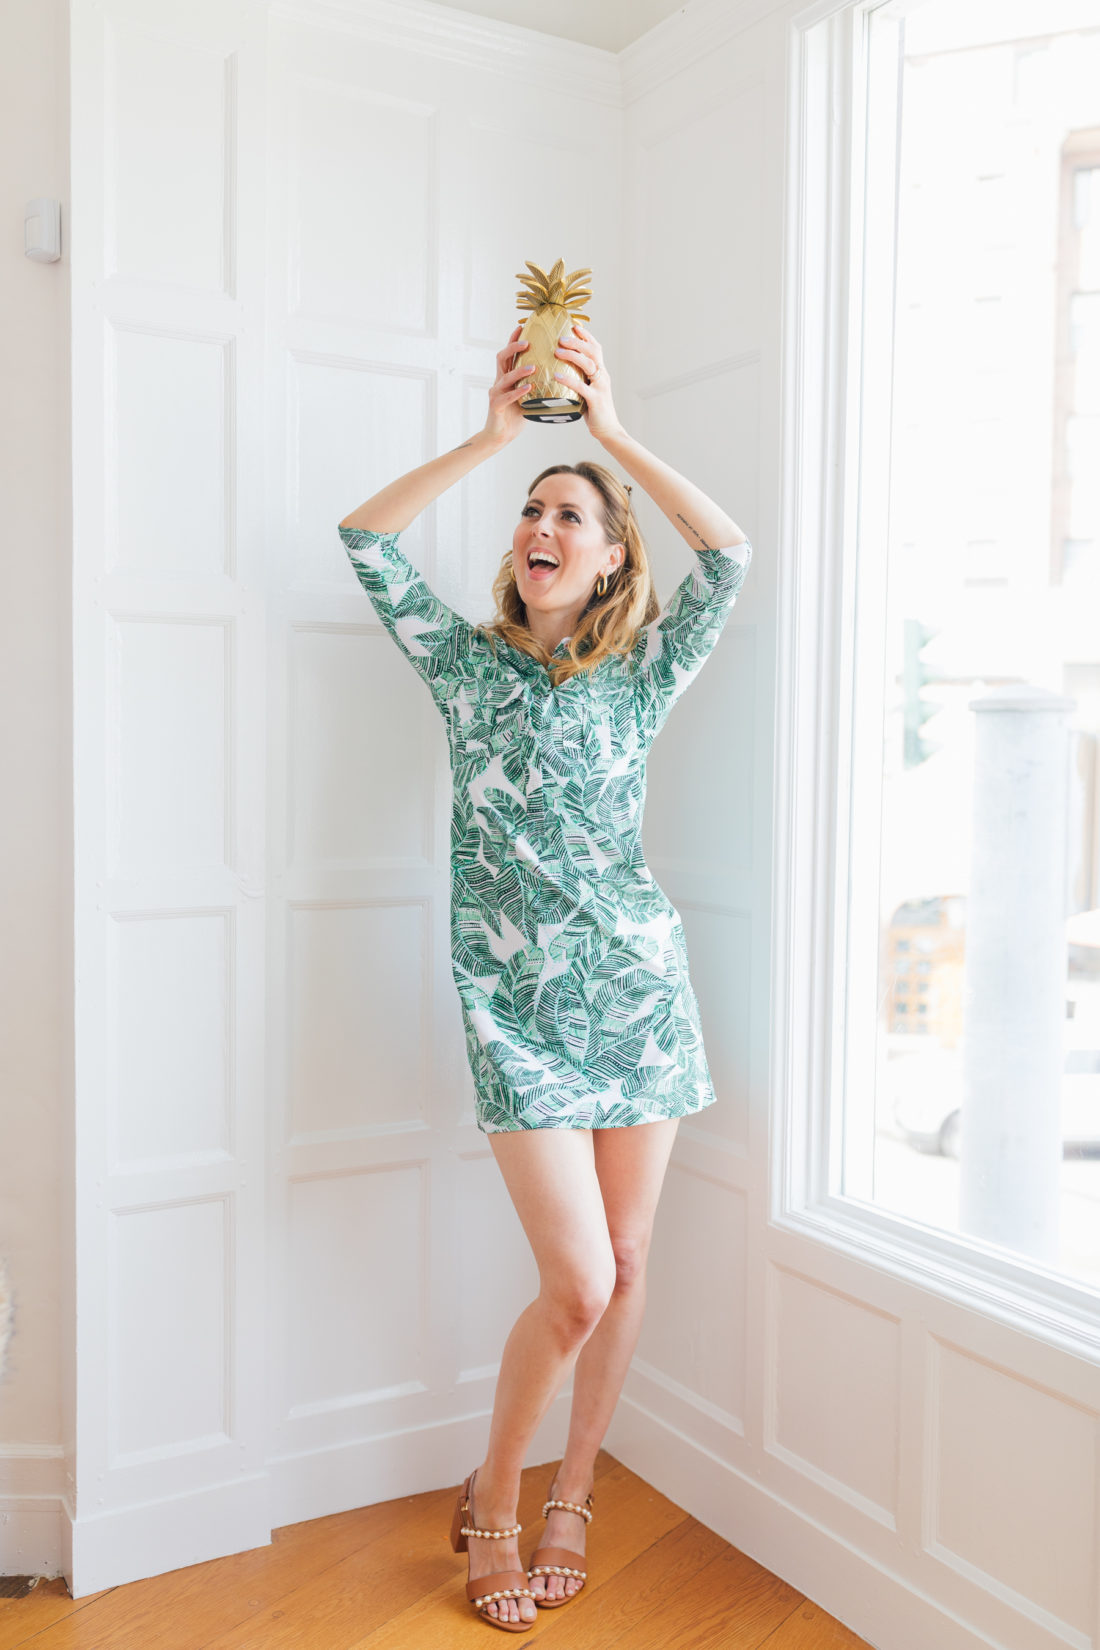 Eva Amurri Martino of Happily Eva After wears a green floral dress and shares her Jamaica packing list